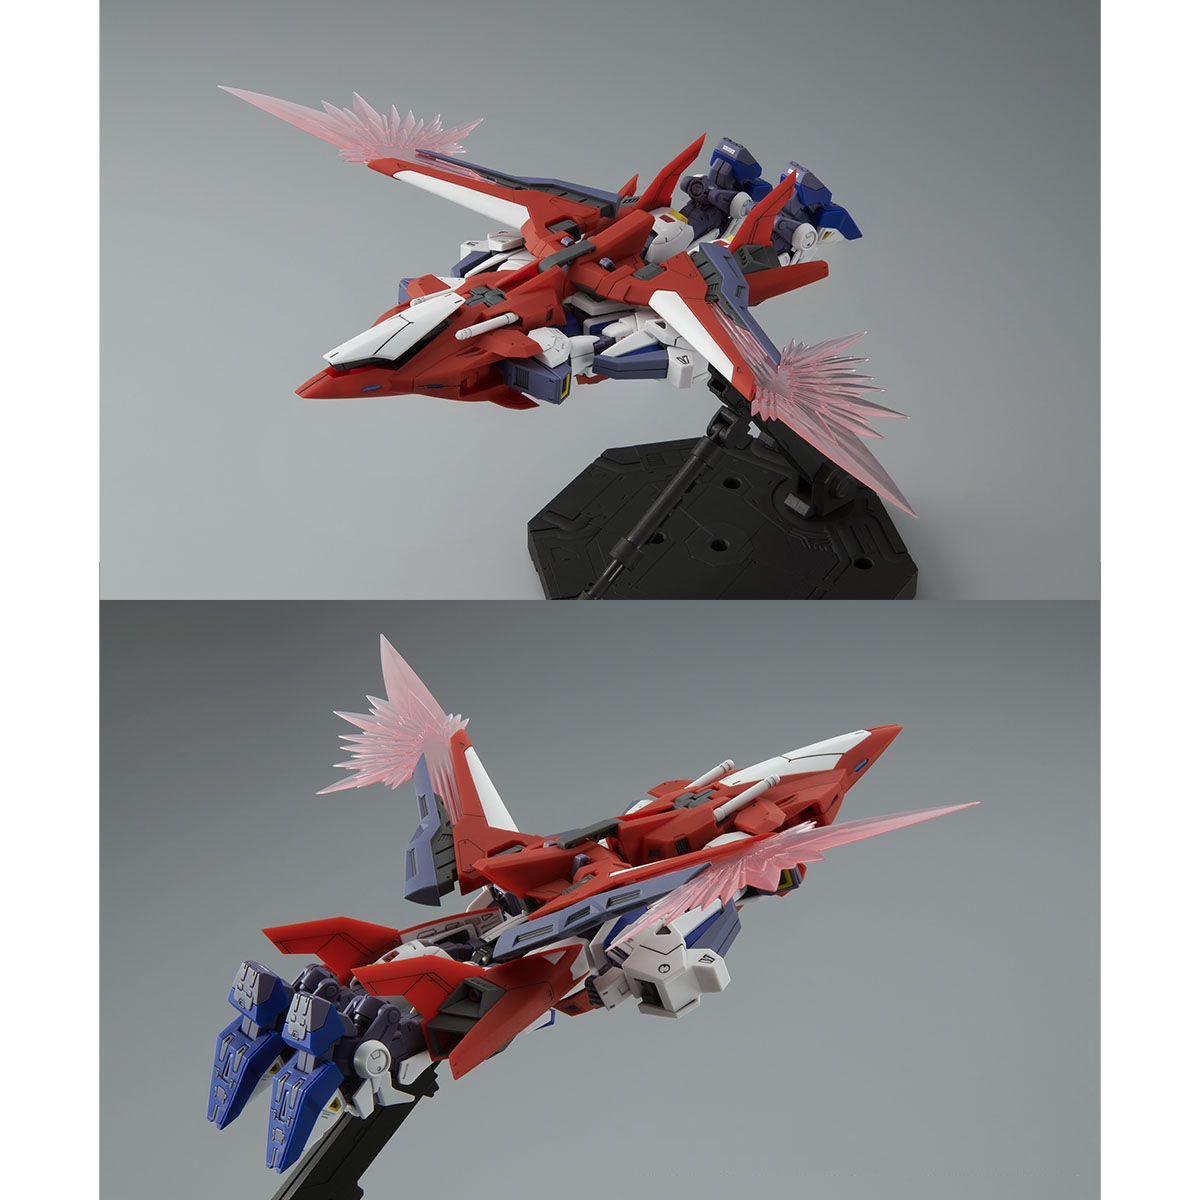 MG 1/100 MISSION PACK W-TYPE for GUNDAM F90 [Nov 2021 Delivery]